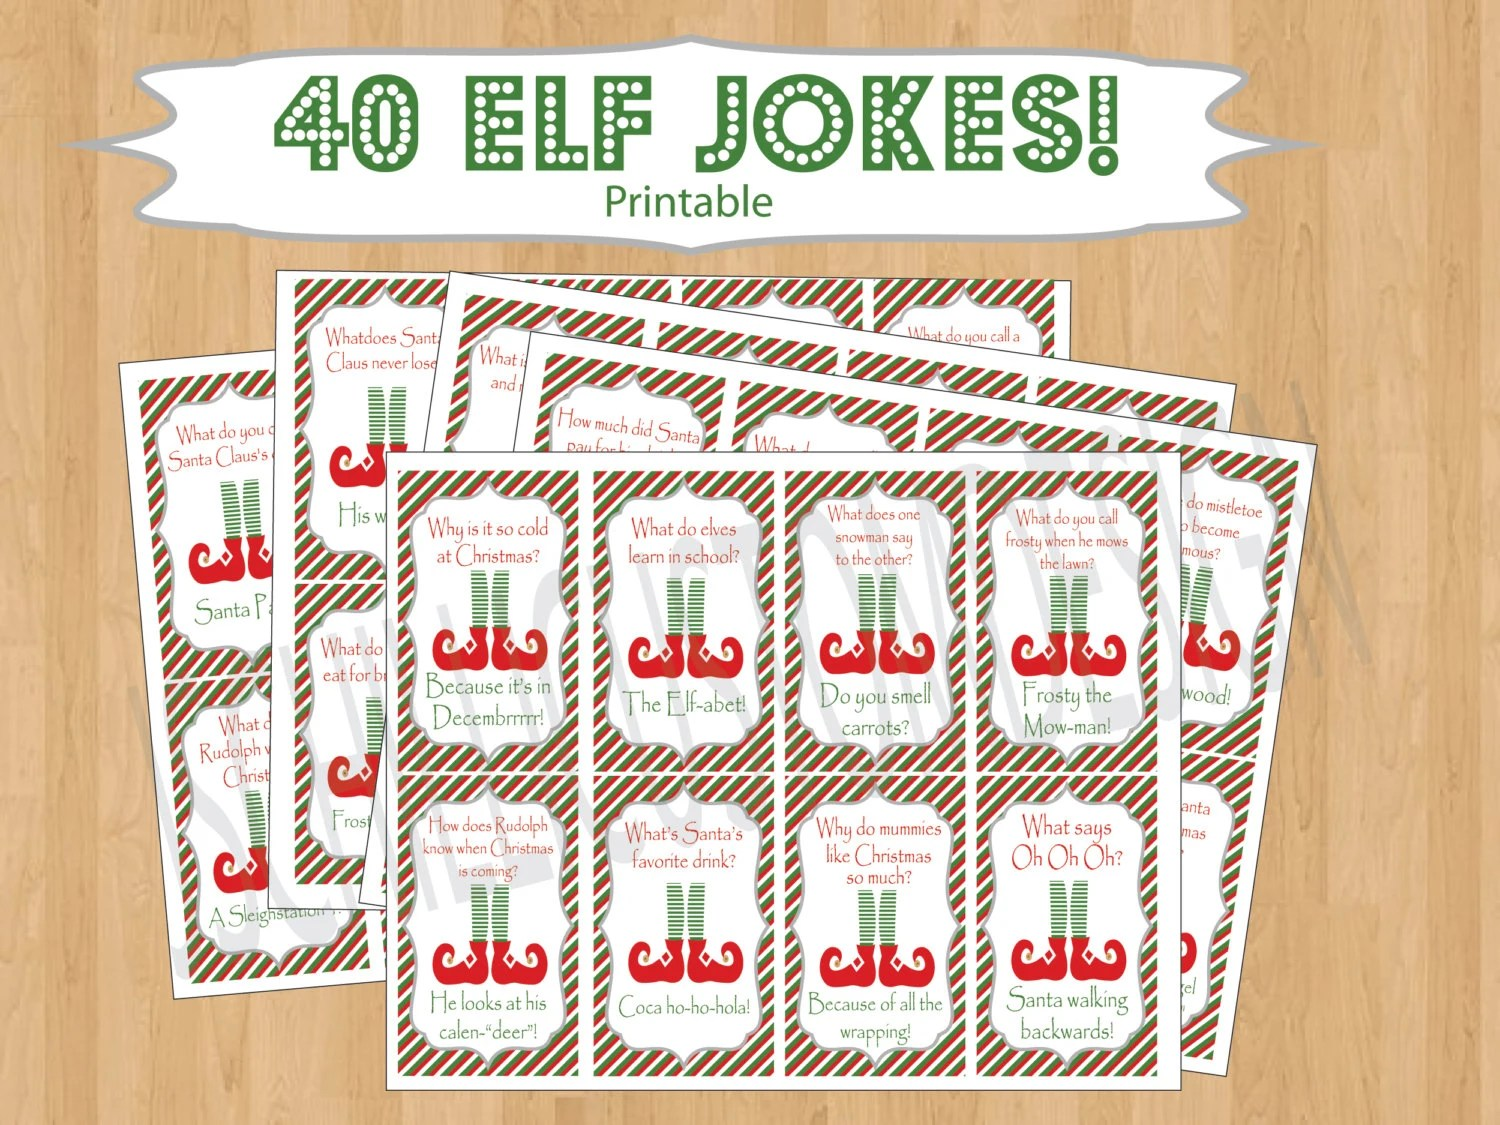 Printable Shelf Elf Inspired Jokes Amp By Jschillicustomdesign